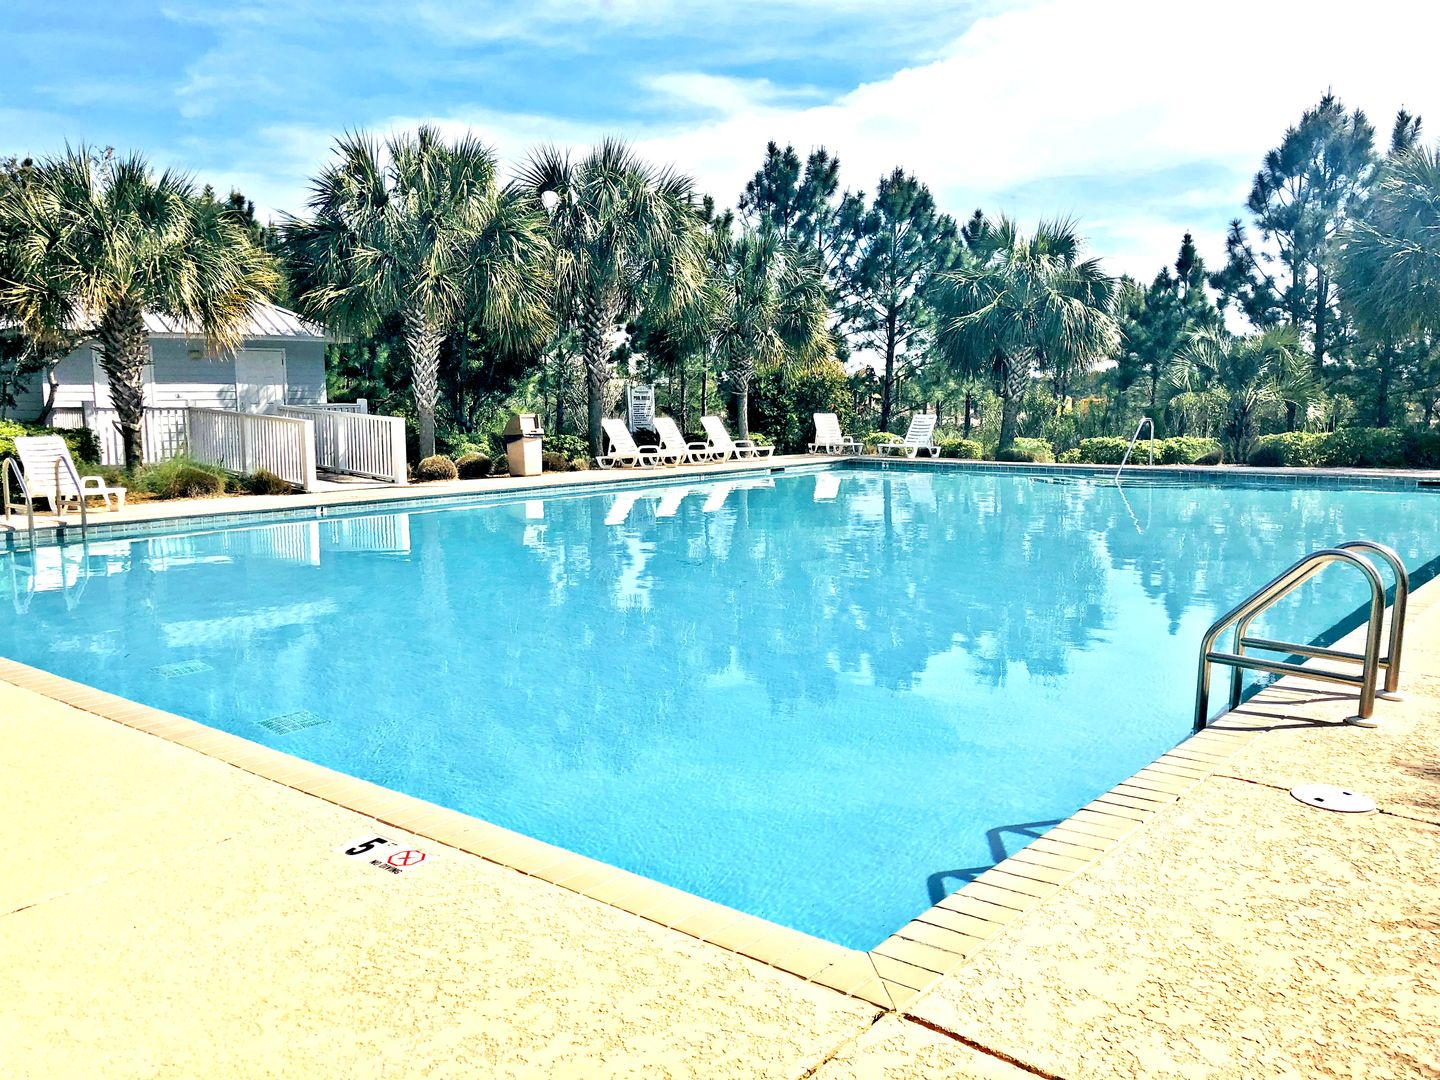 Guests Can Enjoy Two Community Pools.